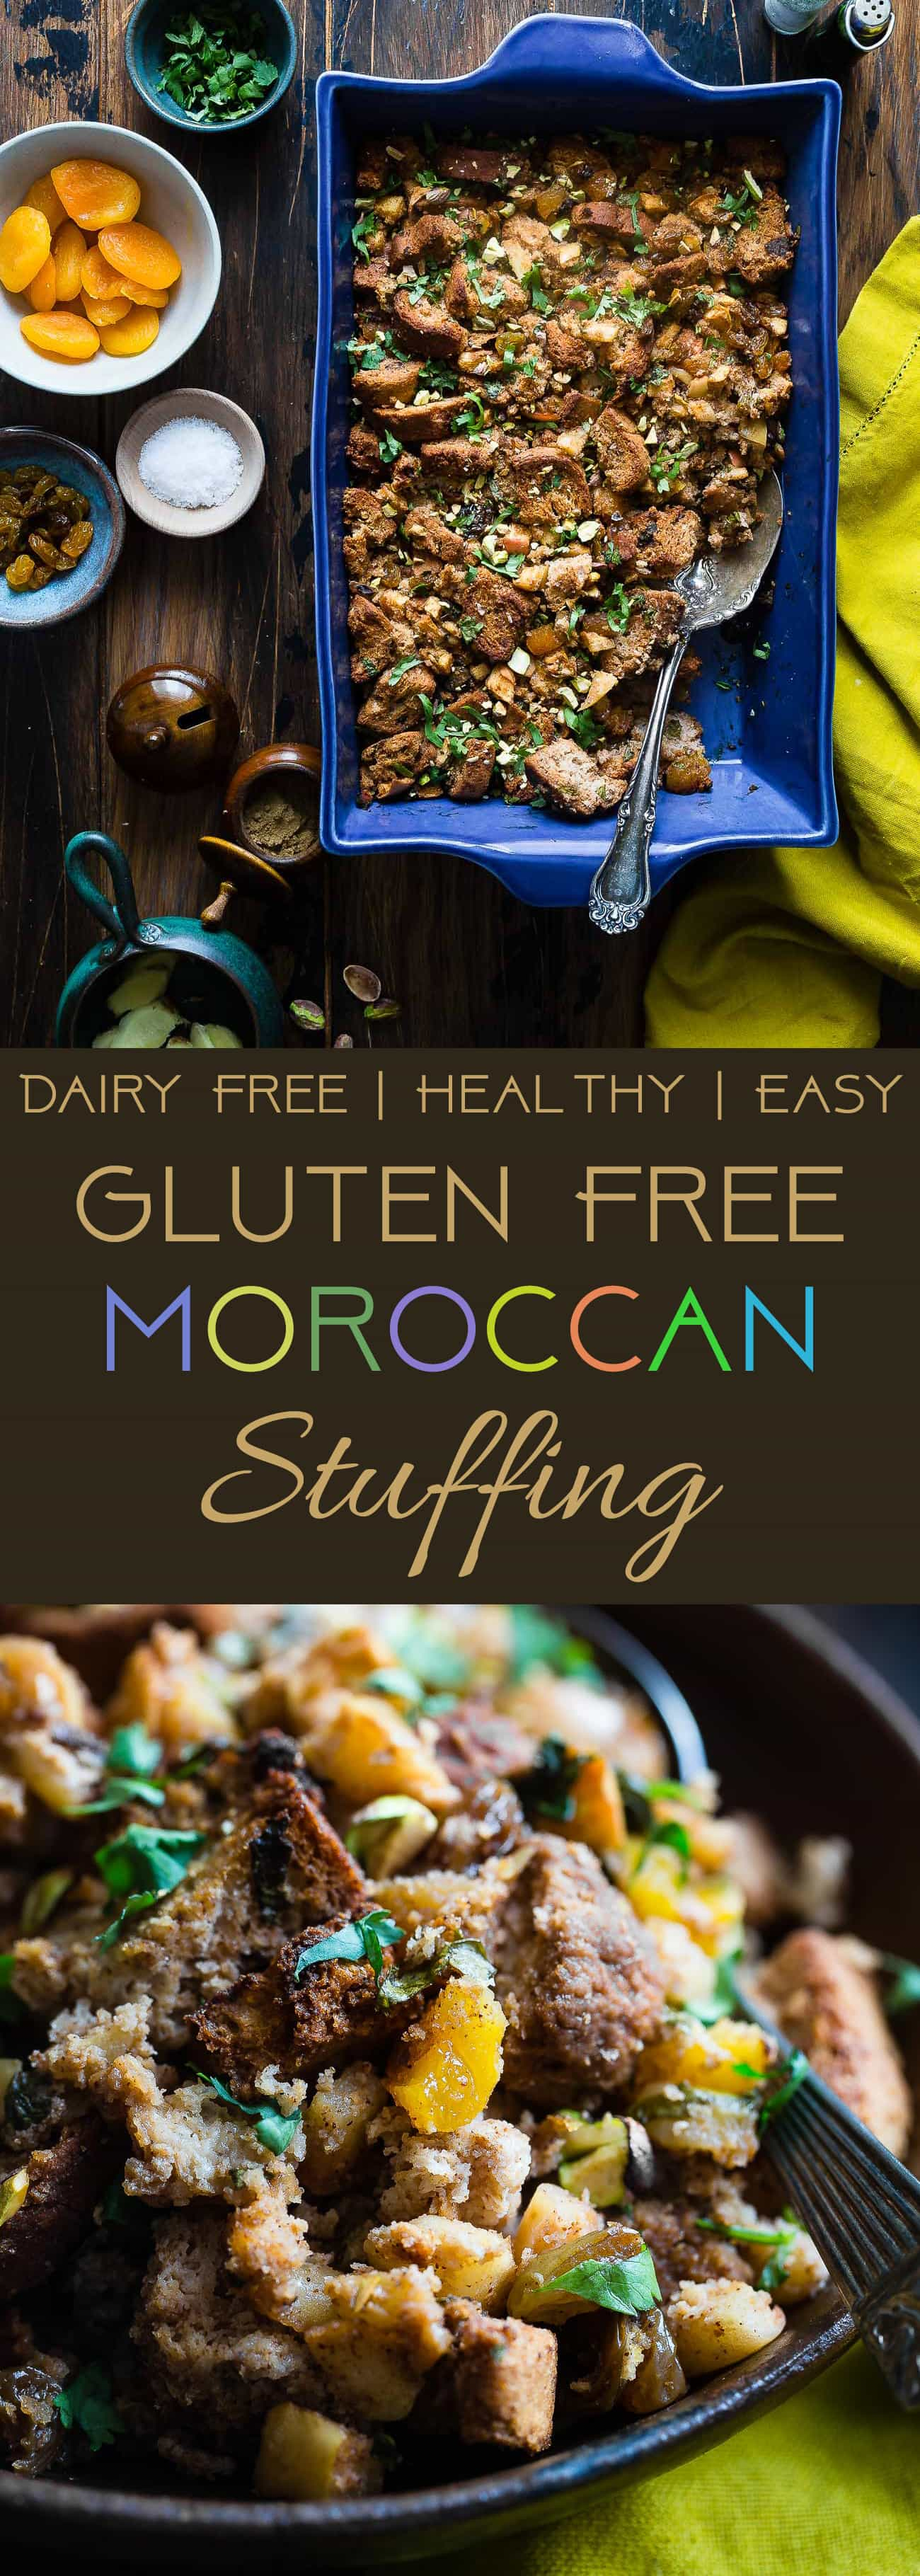 Moroccan Gluten Free Stuffing  -  This simple gluten free stuffing is made with spicy-sweet Moroccan flavors, apples and dried fruit! It's a healthy, dairy-free twist on a classic side dish that's perfect for Thanksgiving! | Foodfaithfitness.com | @FoodFaithFit | best gluten free stuffing. homemade gluten free stuffing. thanksgiving gluten free stuffing. gluten free stuffing for thanksgiving. clean eating stuffing. udis gluten free stuffing. apple gluten free stuffing.